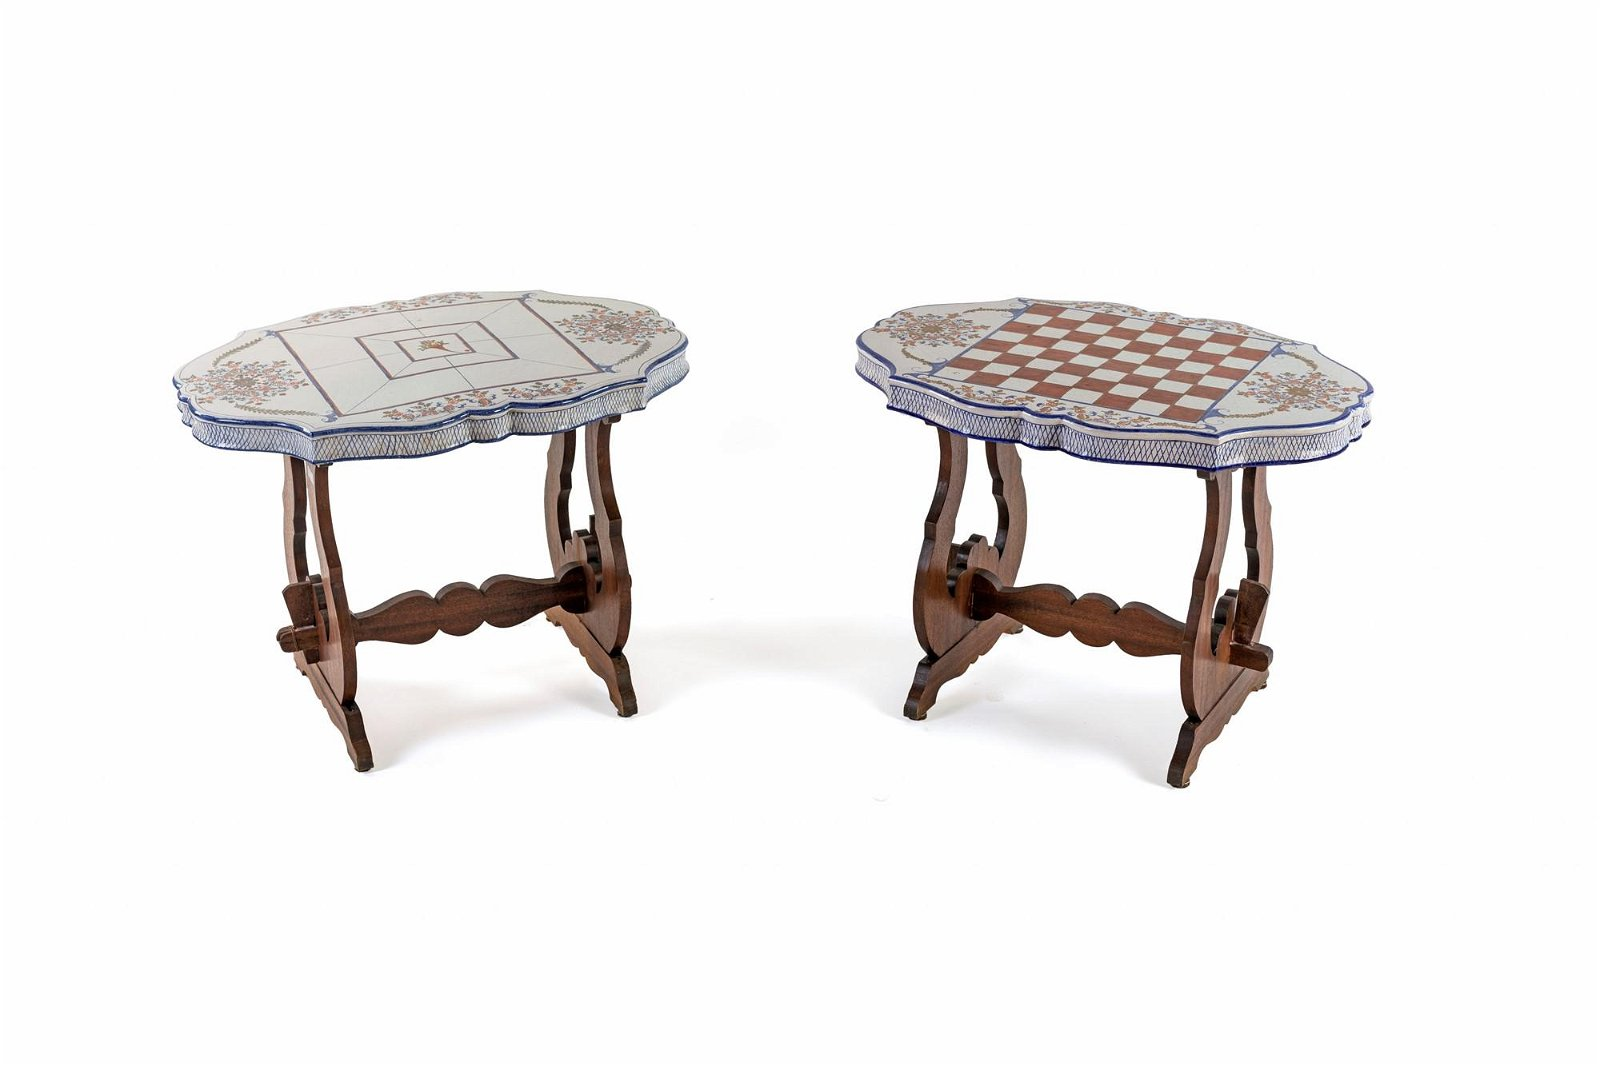 Two low tables in walnut with majolica top